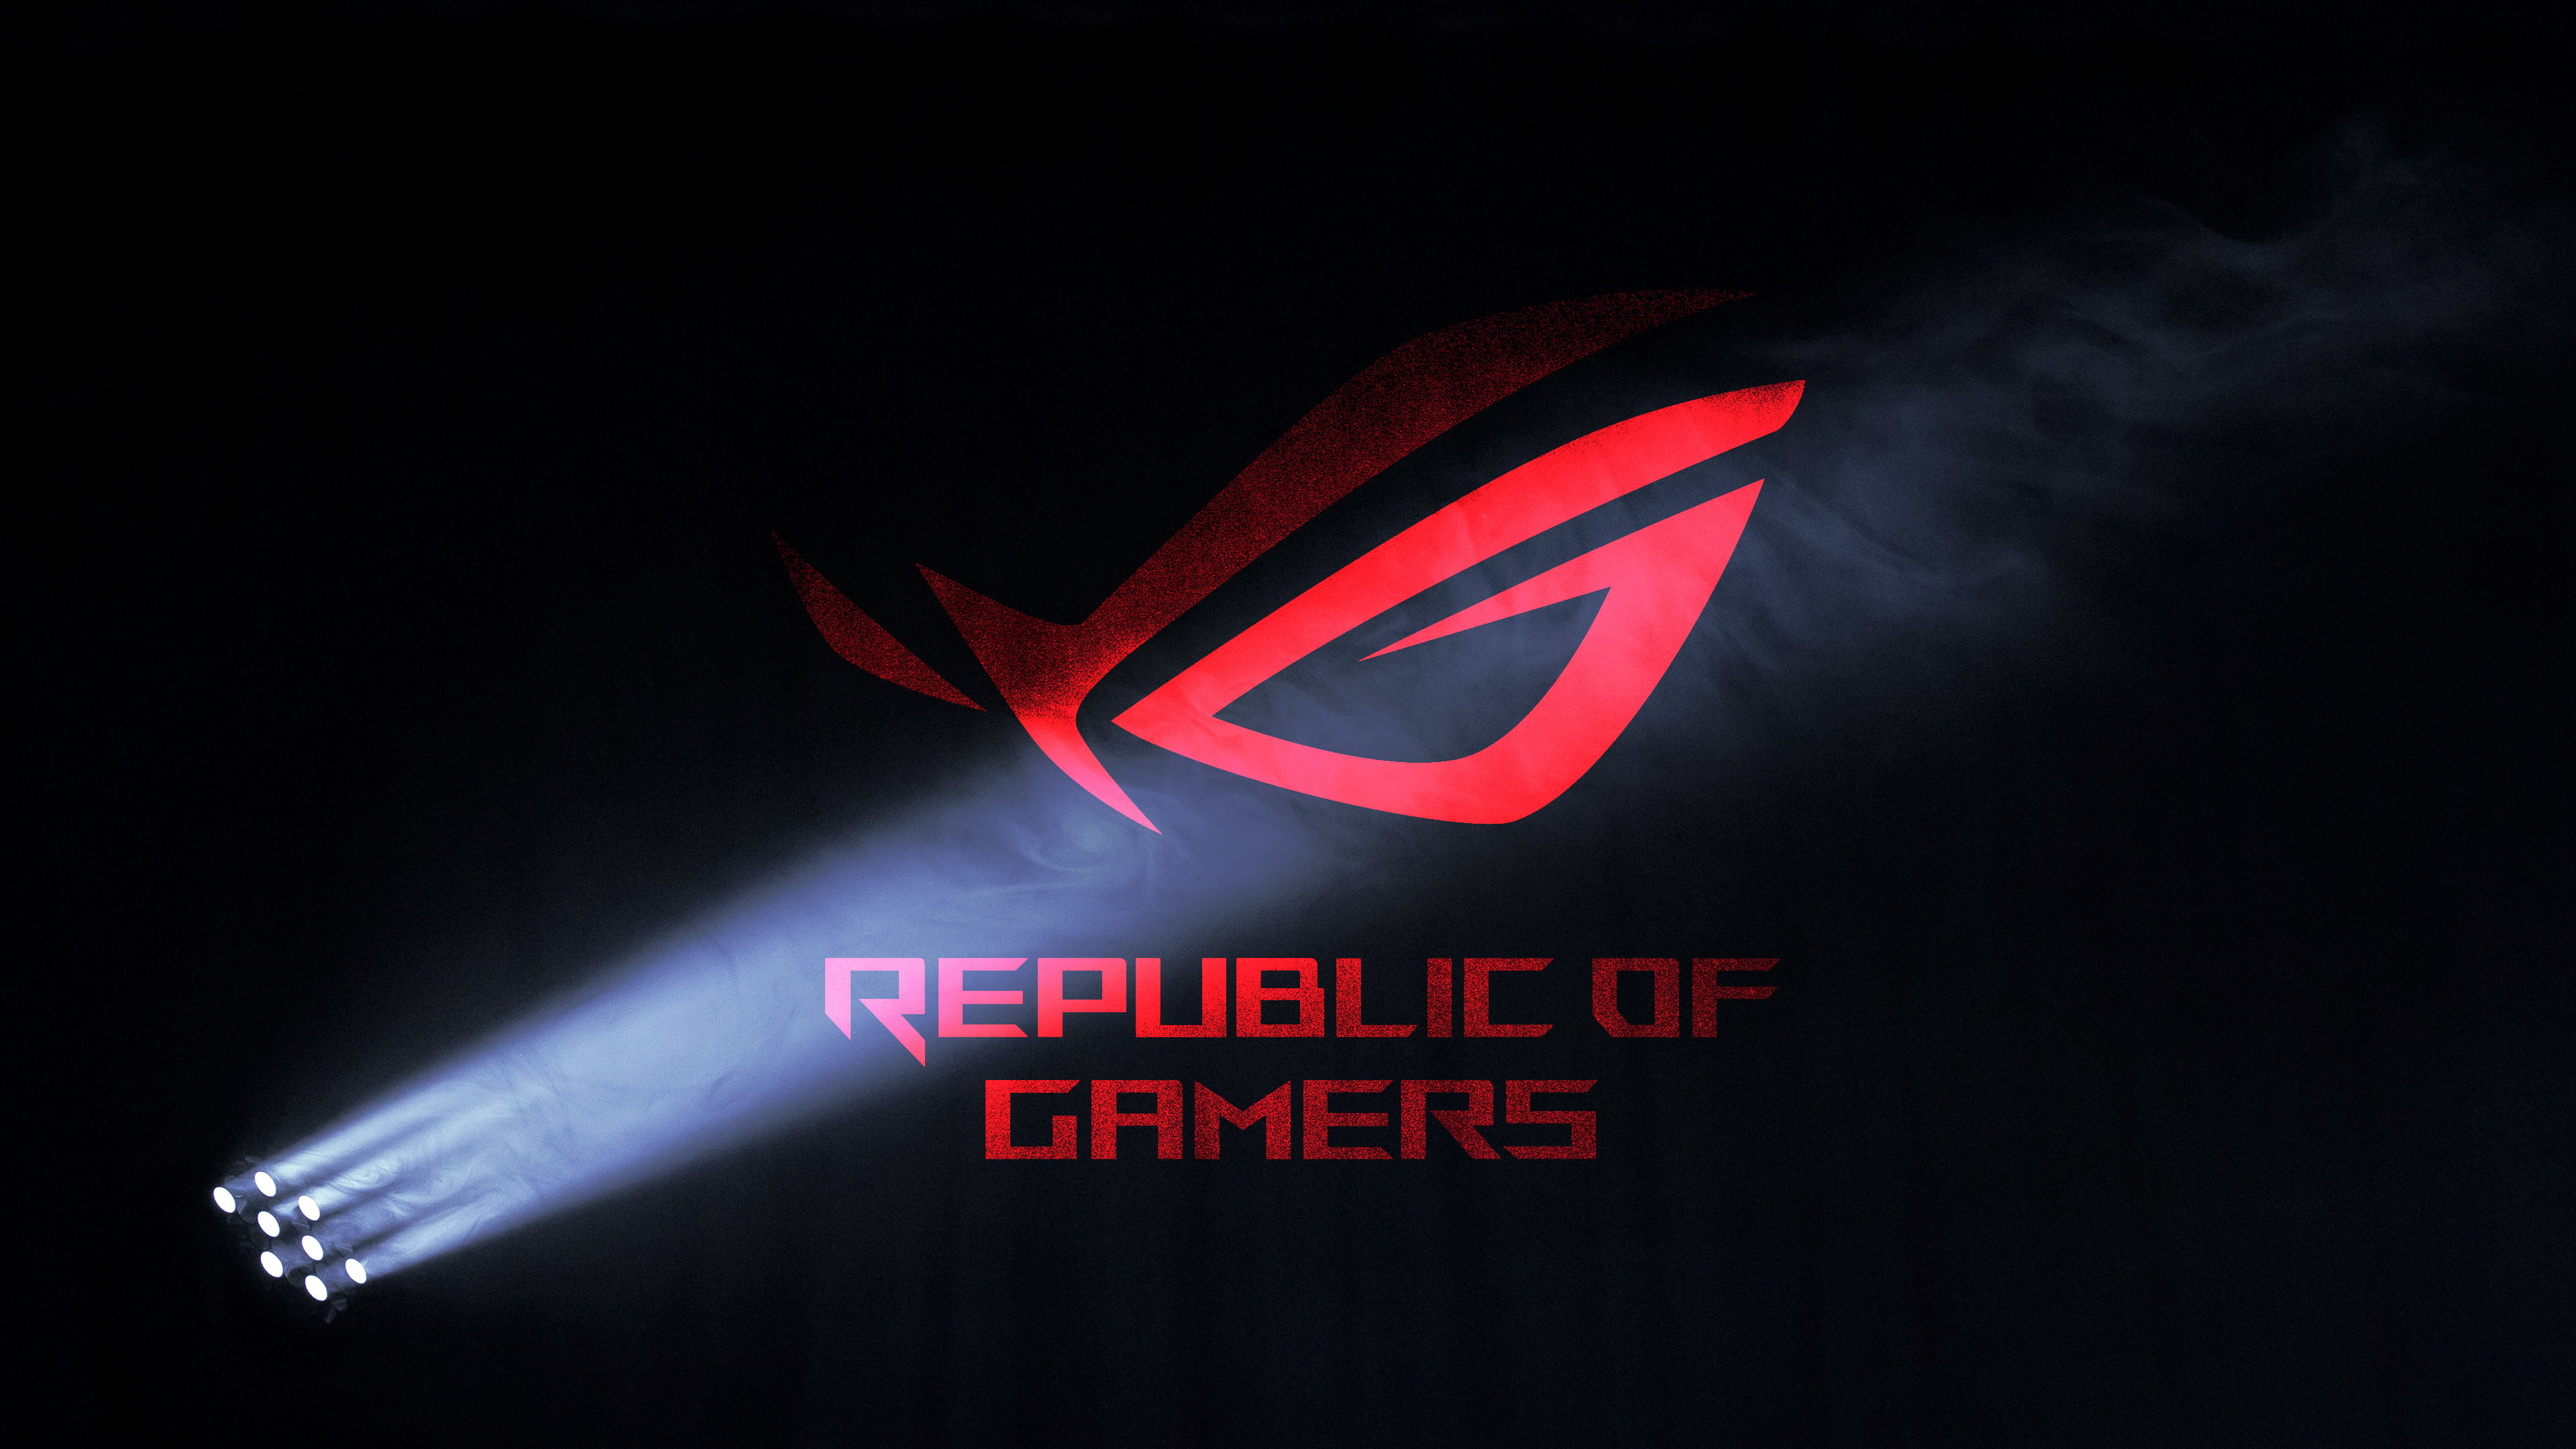 Window 10 Rog Edition , HD Wallpaper & Backgrounds